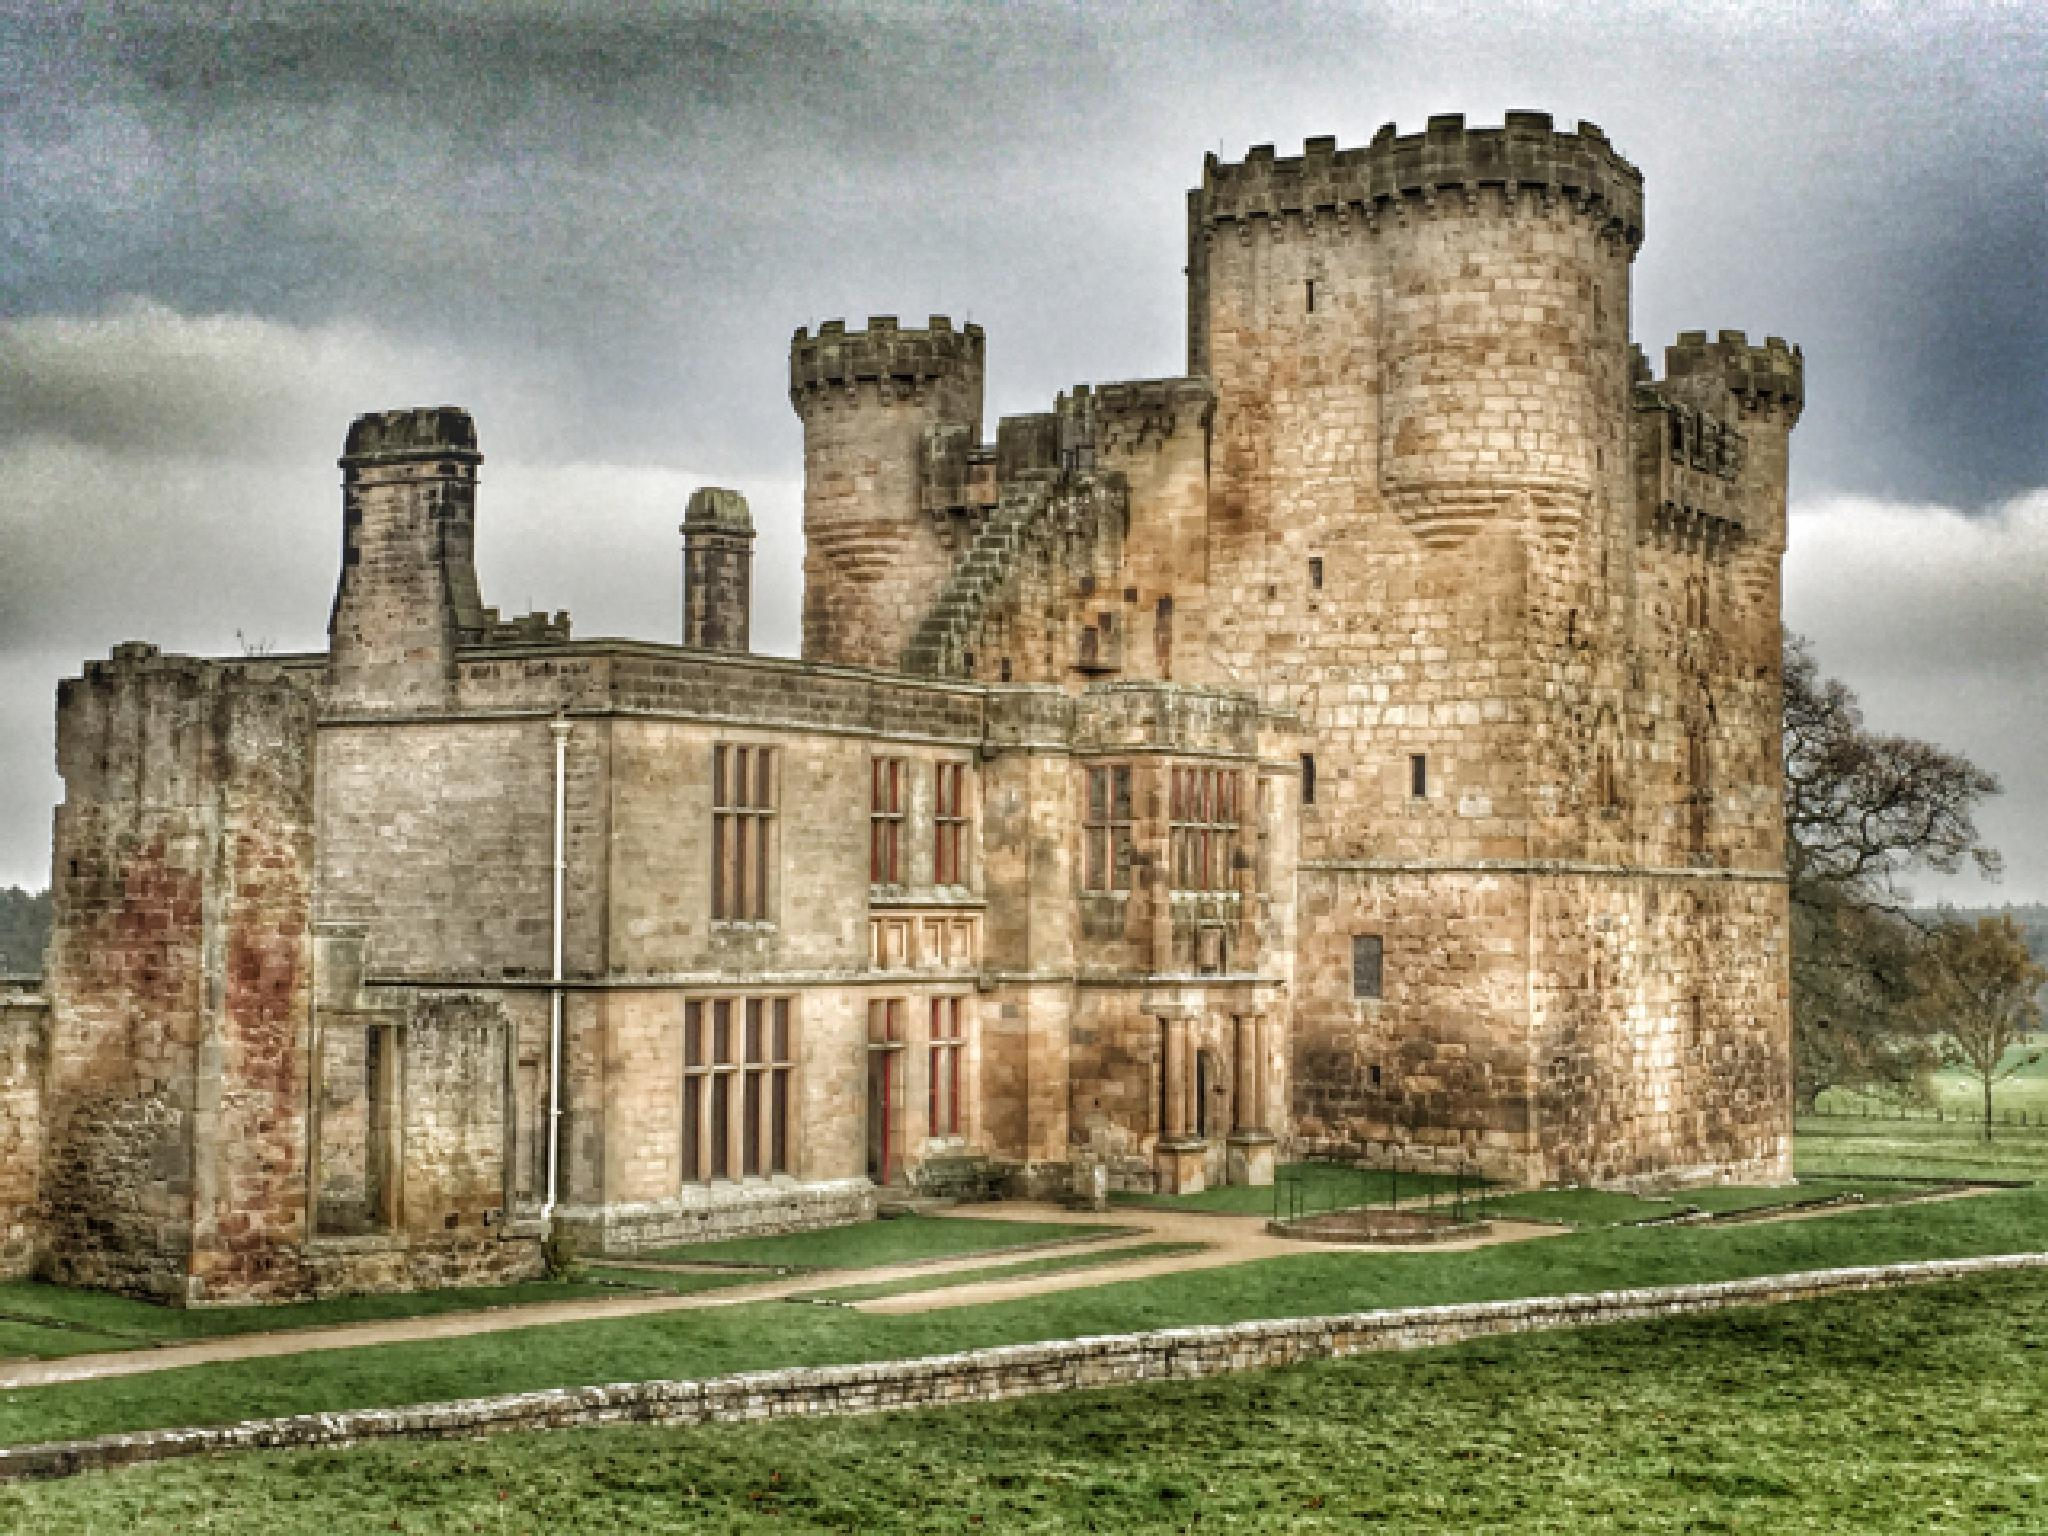 The Castle by Paul Brown